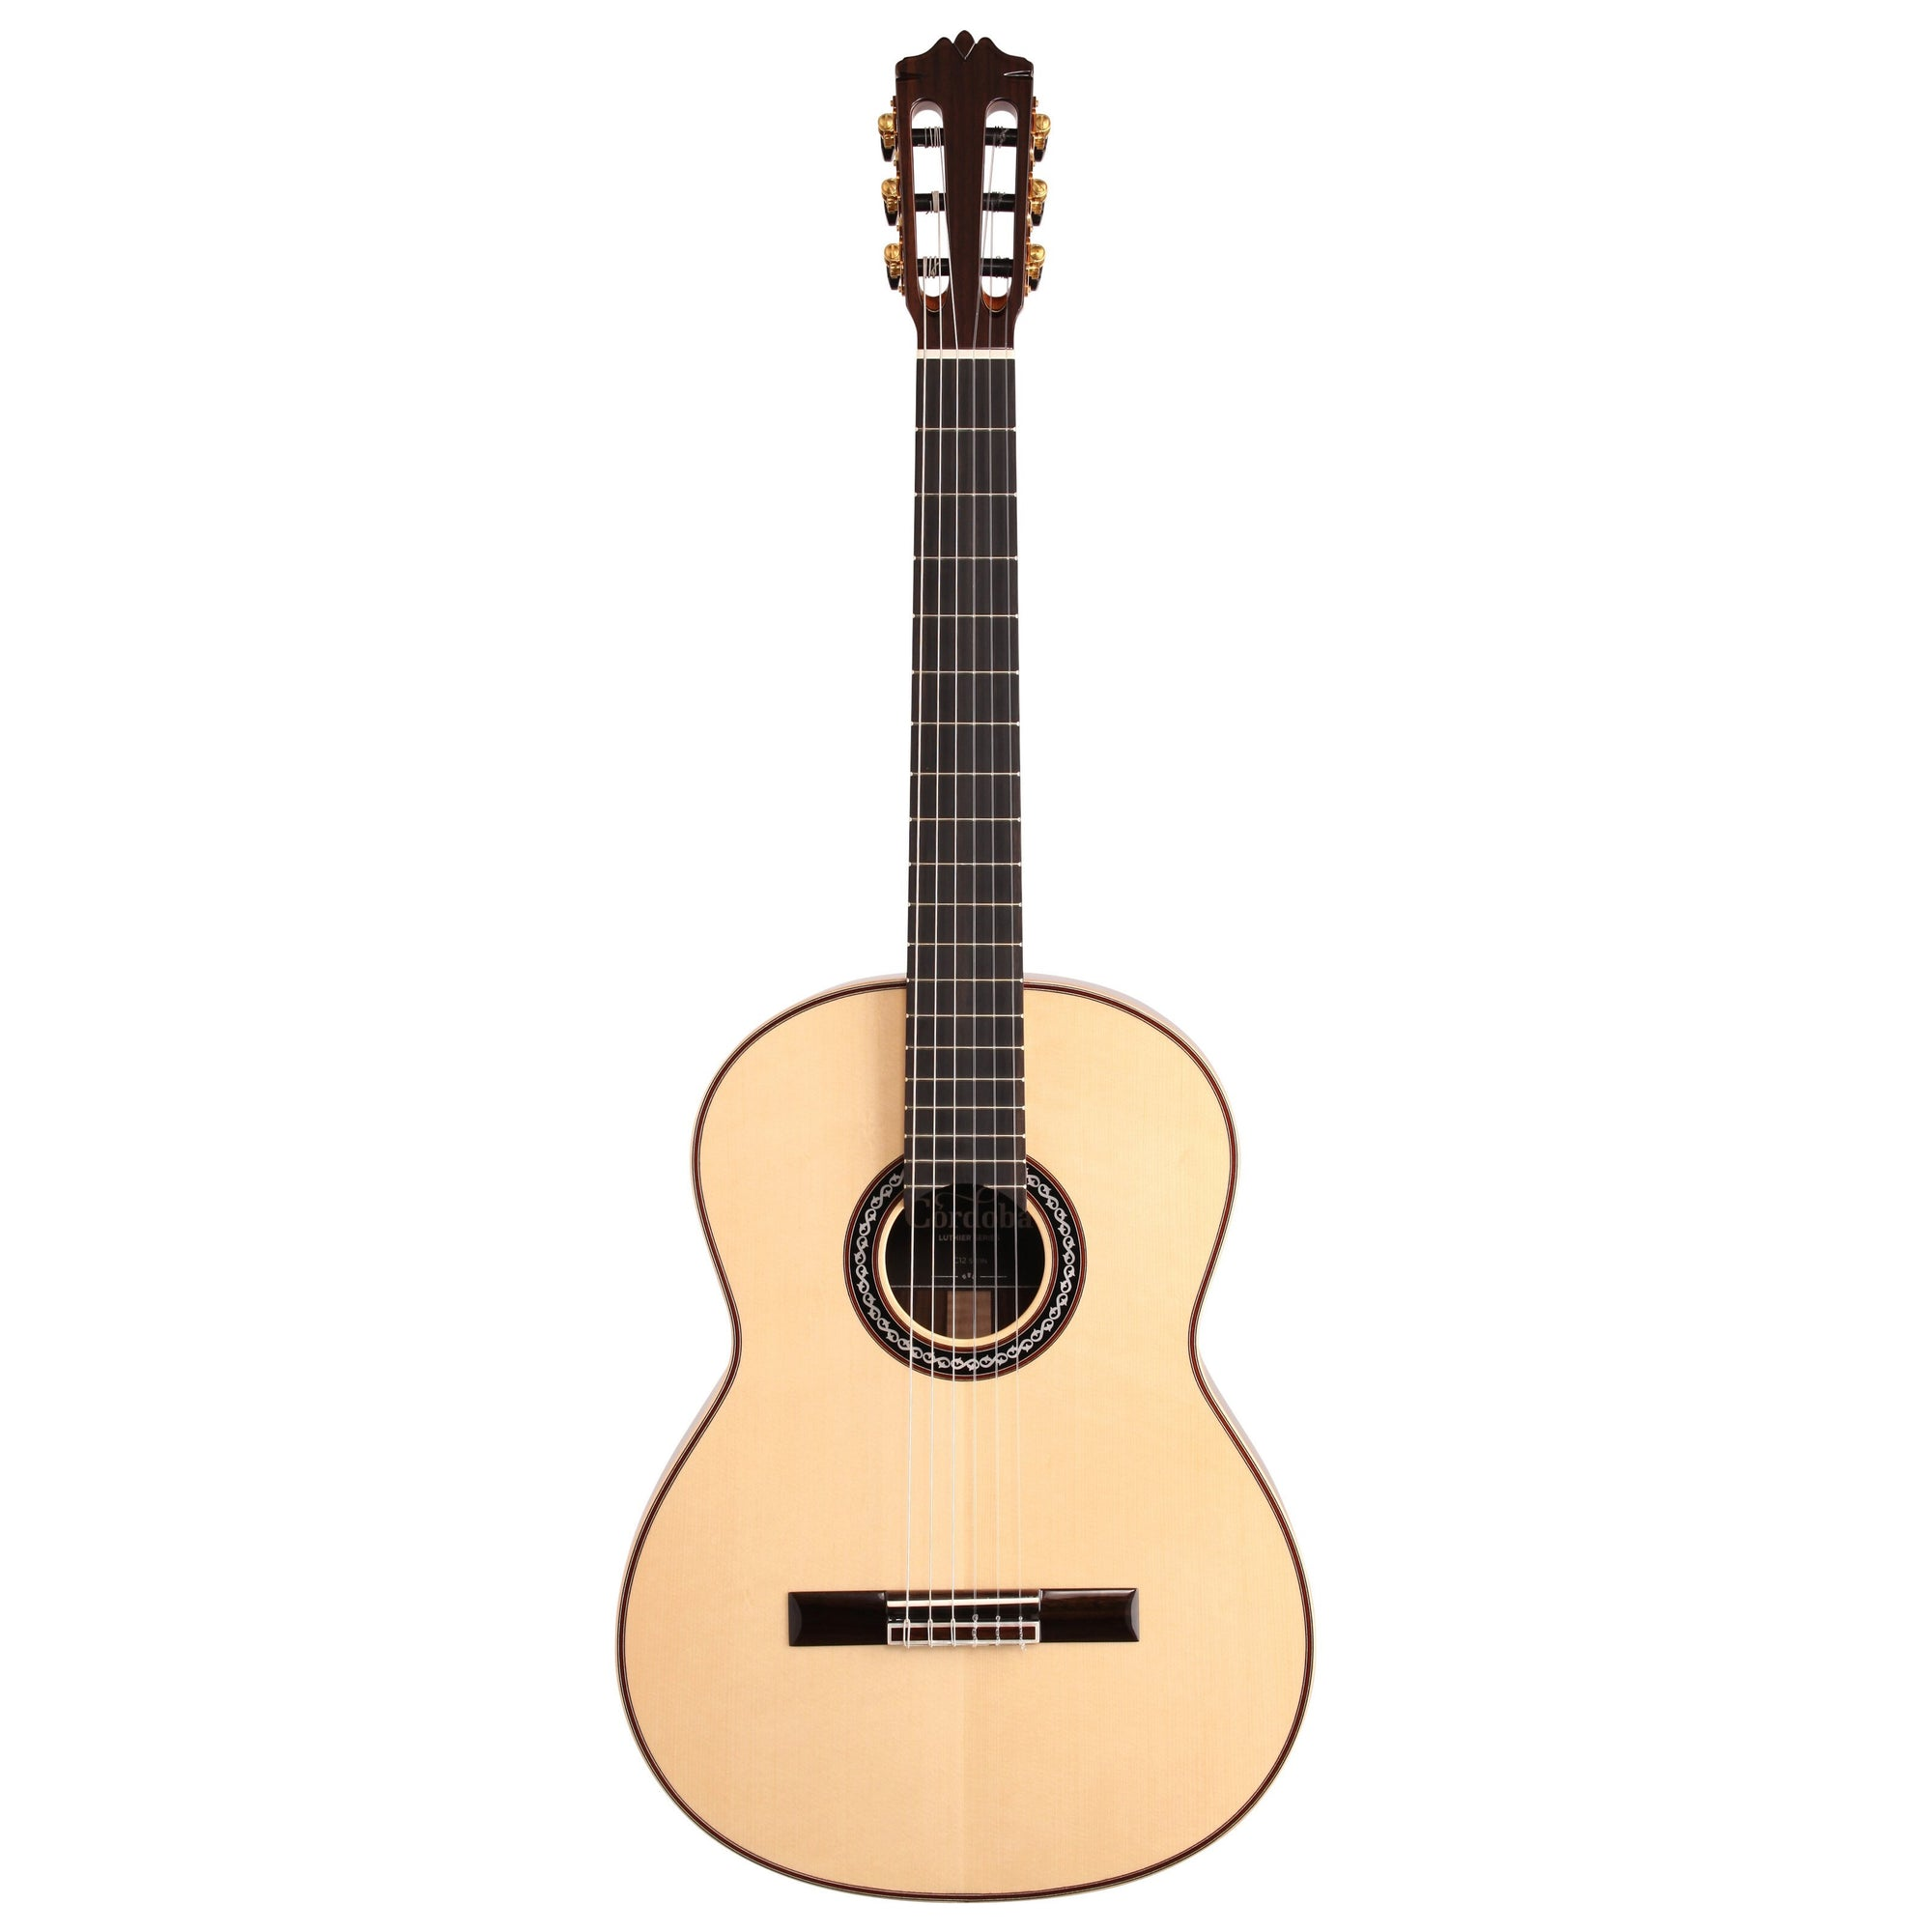 Cordoba C12 SP Classical Acoustic Guitar, with Case